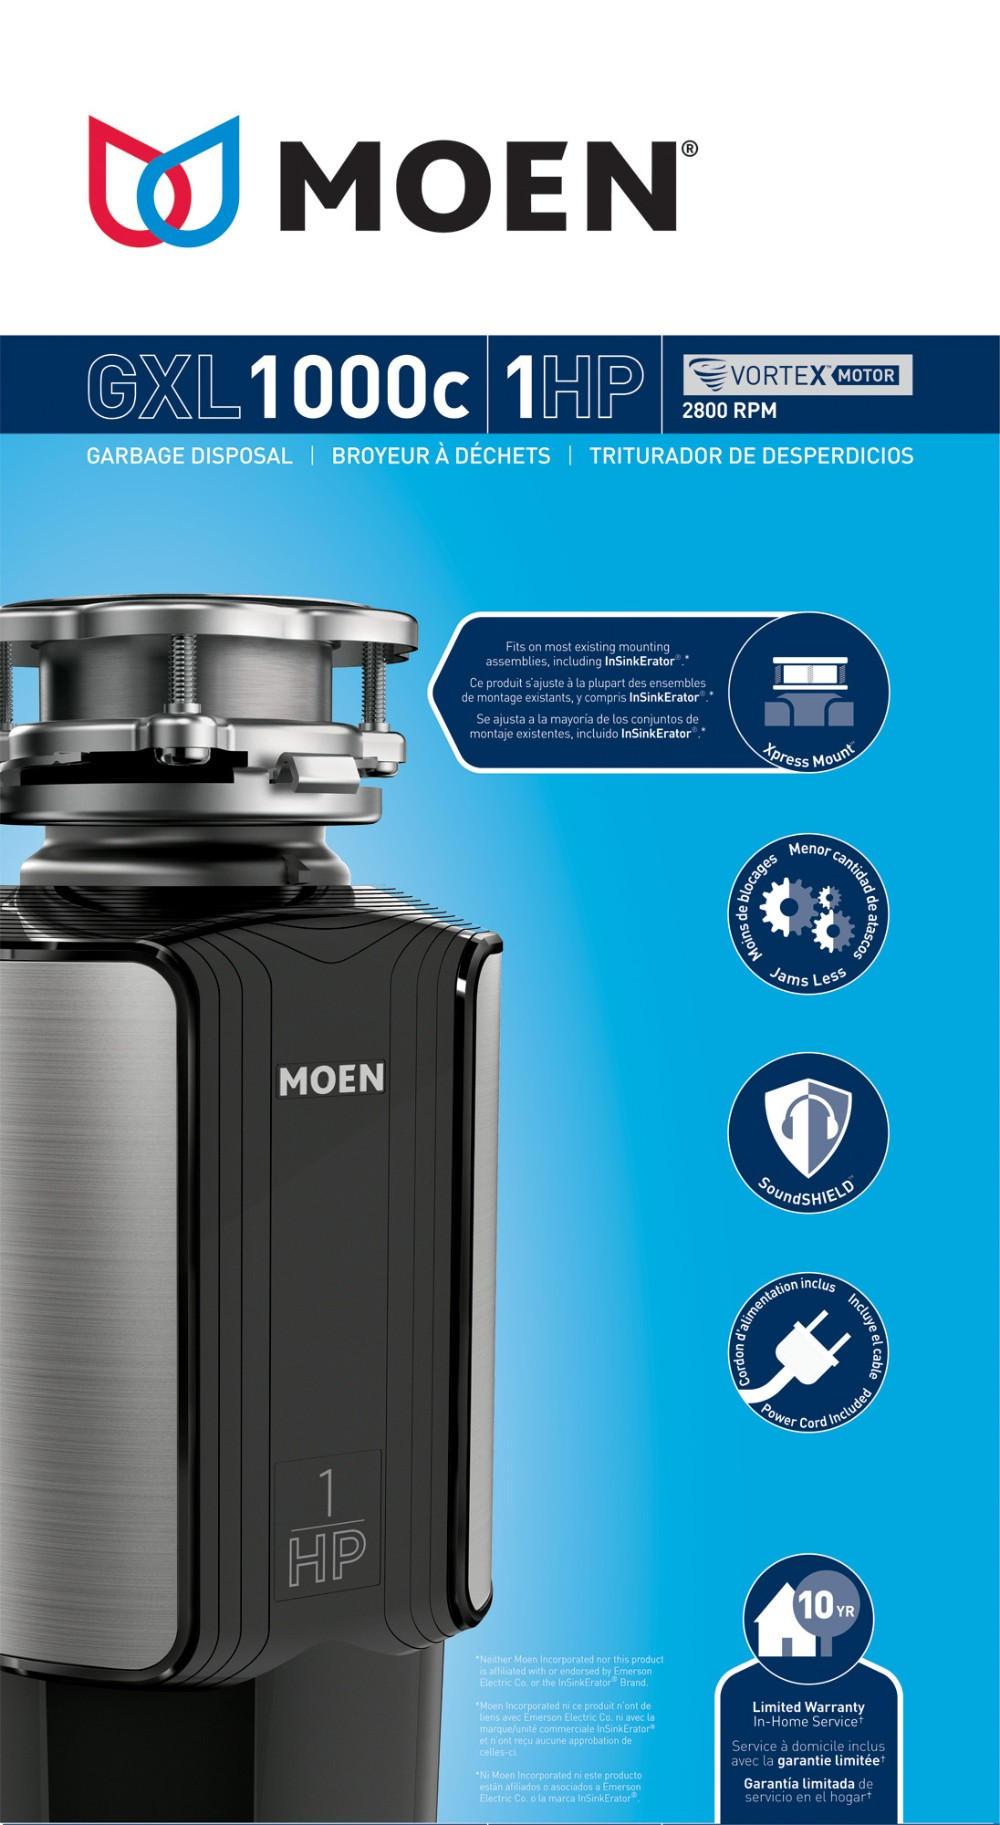 Moen - GXL1000C - GX Series 1 Horsepower Garbage Disposal